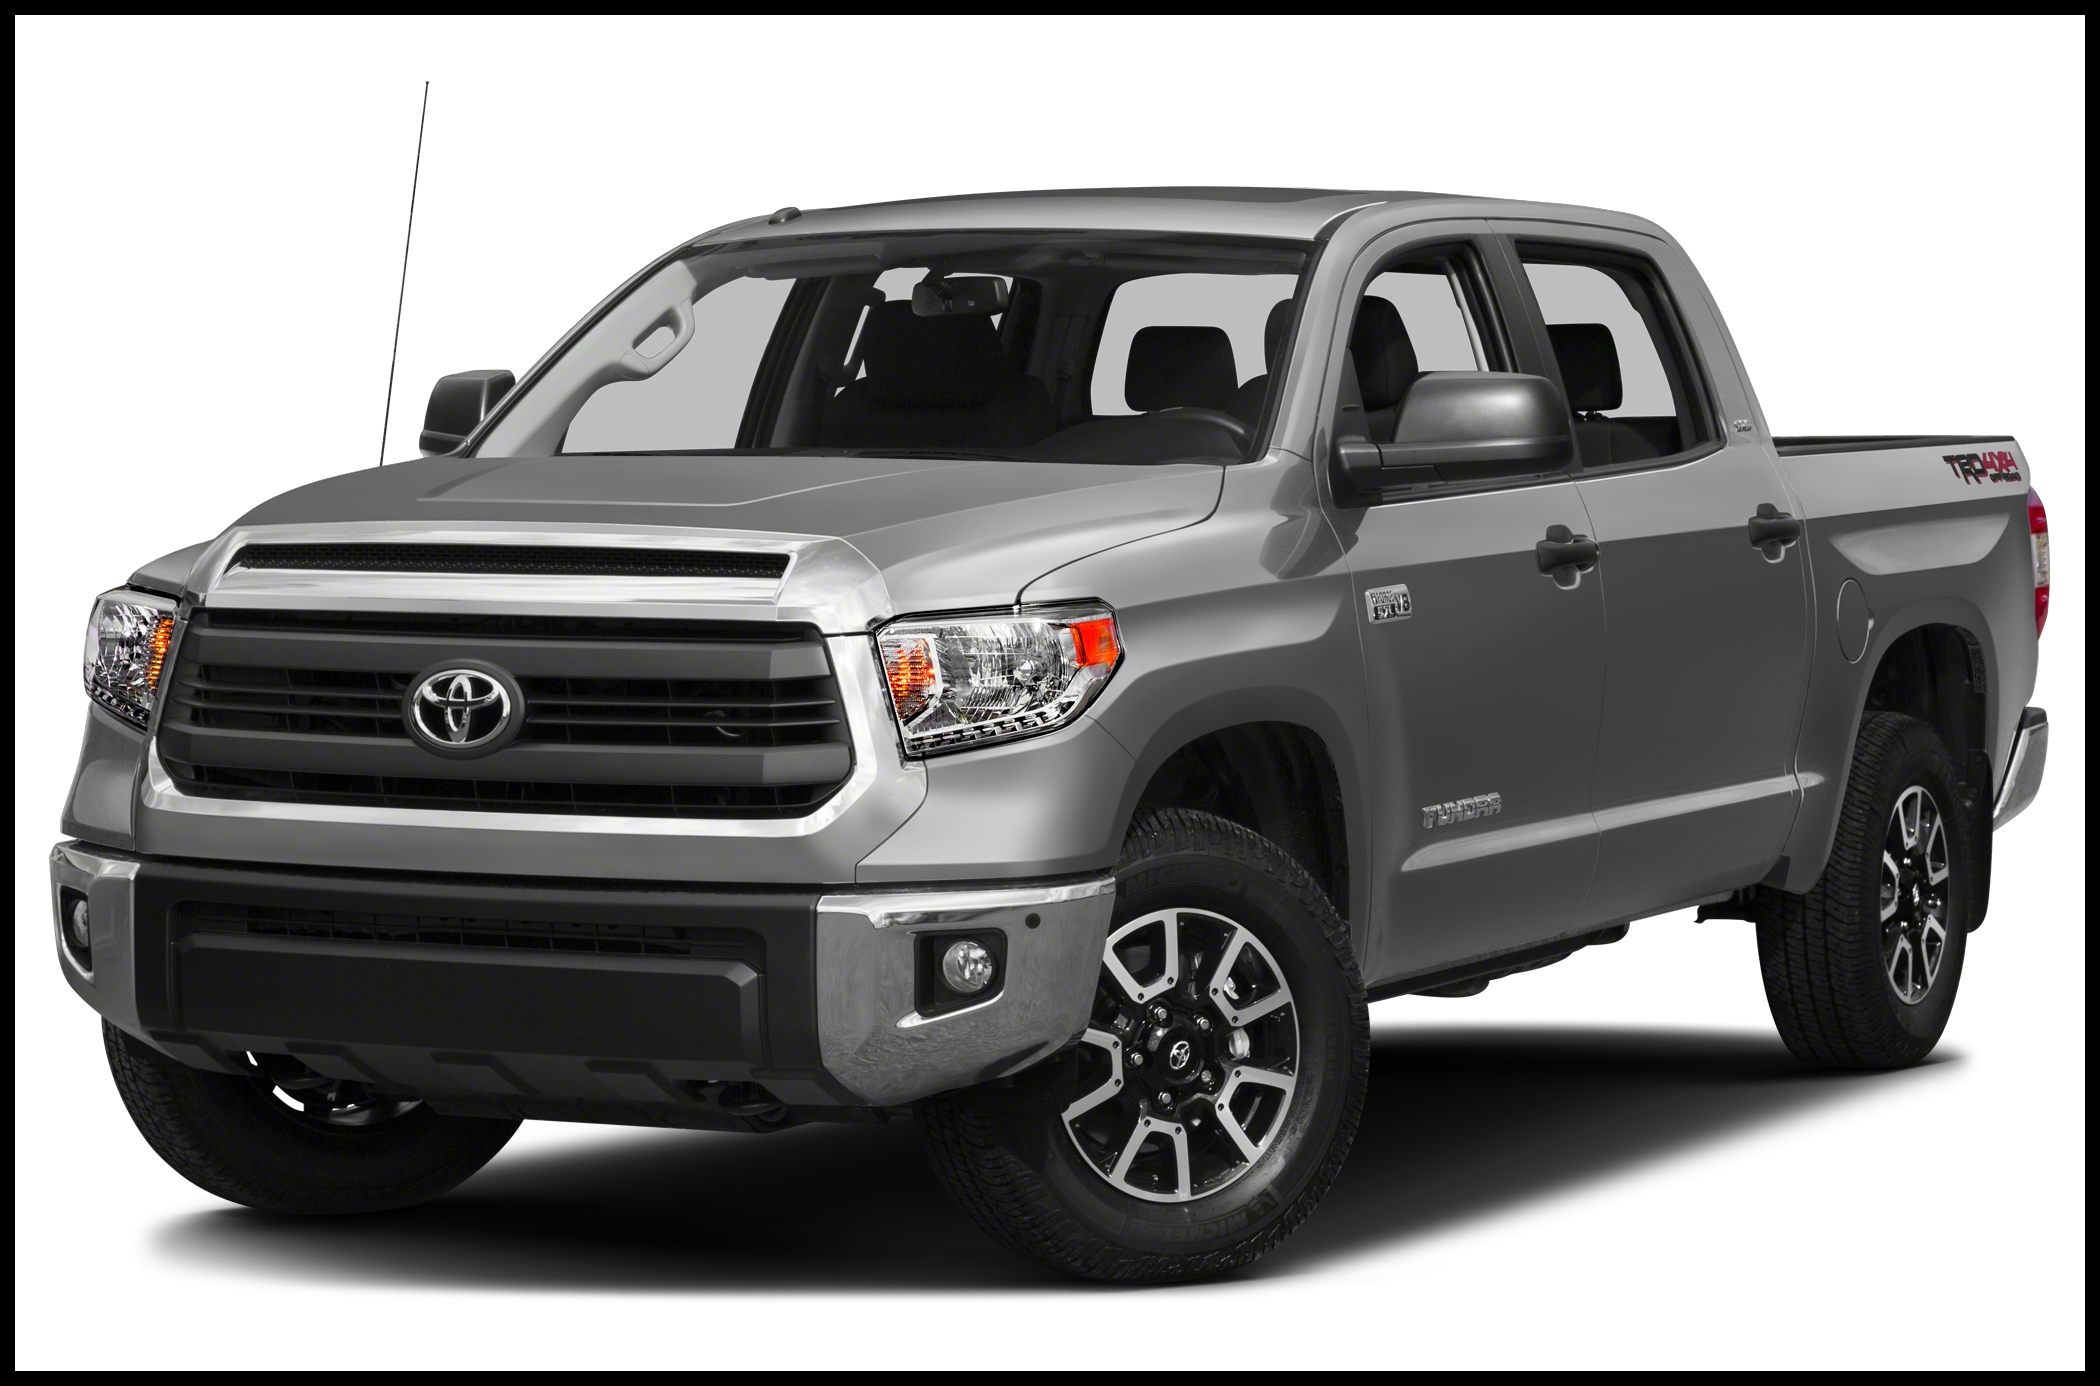 Hot 2014 toyota Tundra Sr5 4 6l V8 4x2 Crew Max 5 6 Ft Box 145